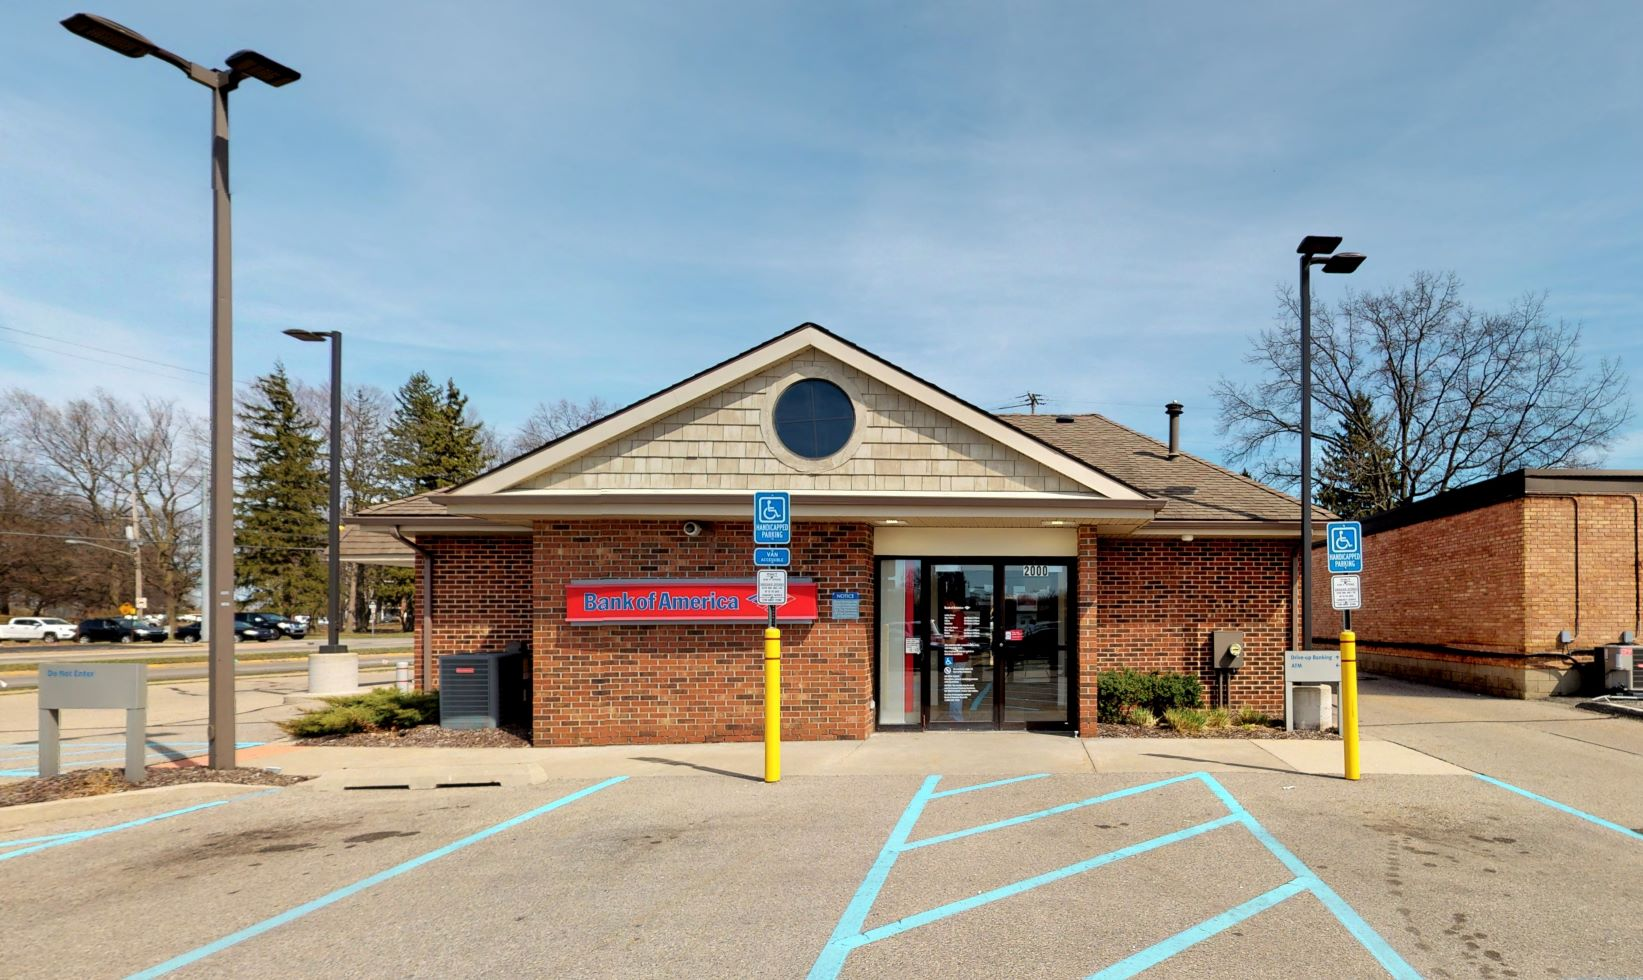 Bank of America financial center with walk-up ATM | 2000 Lake Michigan Dr NW, Grand Rapids, MI 49504